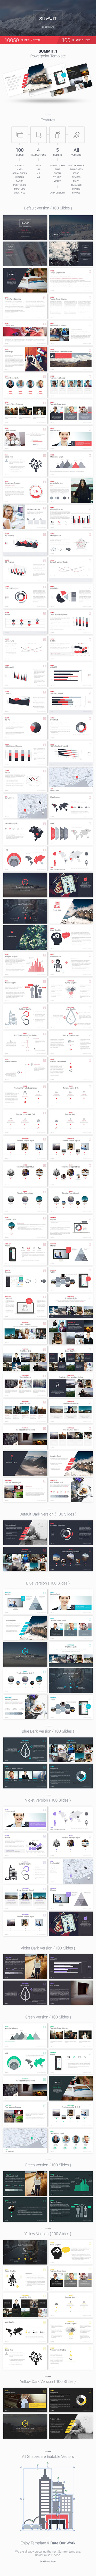 Summit 1 PowerPoint Template Free Download #1 free download Summit 1 PowerPoint Template Free Download #1 nulled Summit 1 PowerPoint Template Free Download #1